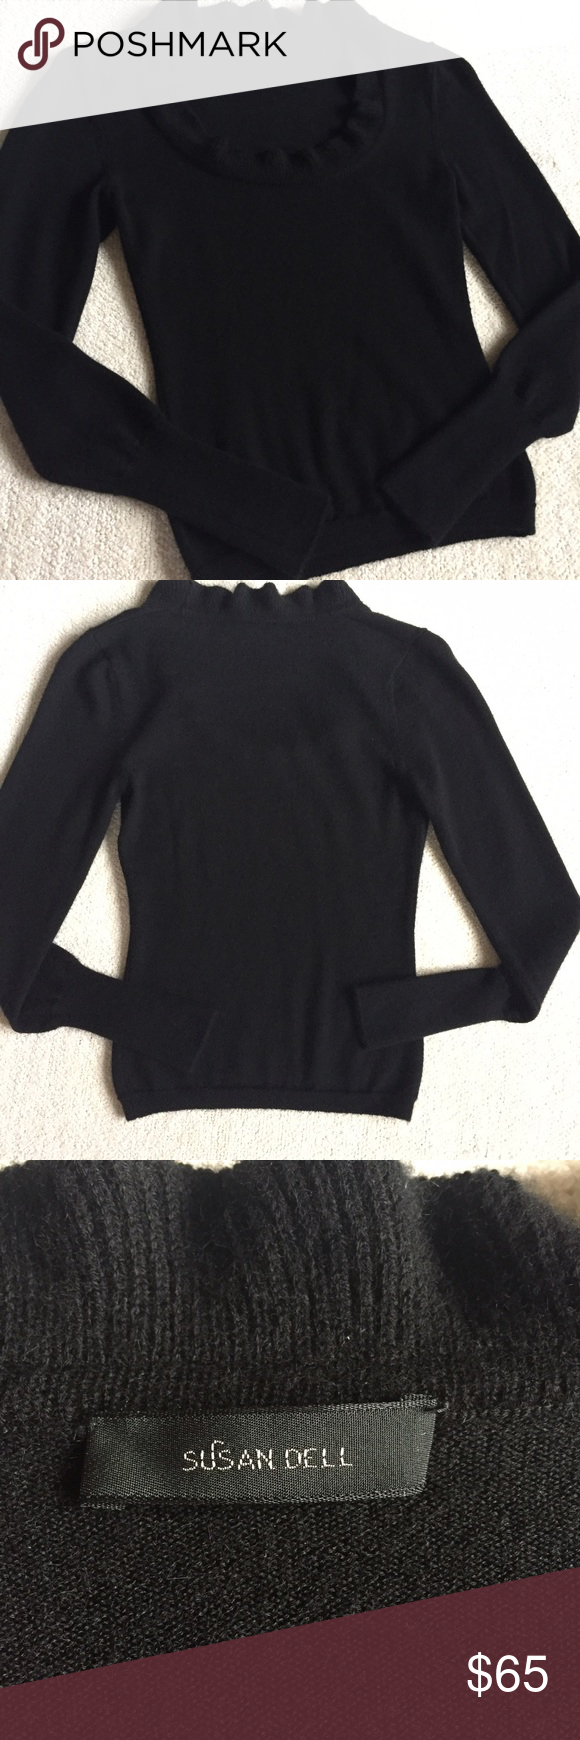 Black 100% Cashmere Sweater Susan Dell Cashmere Sweater Beautiful ...